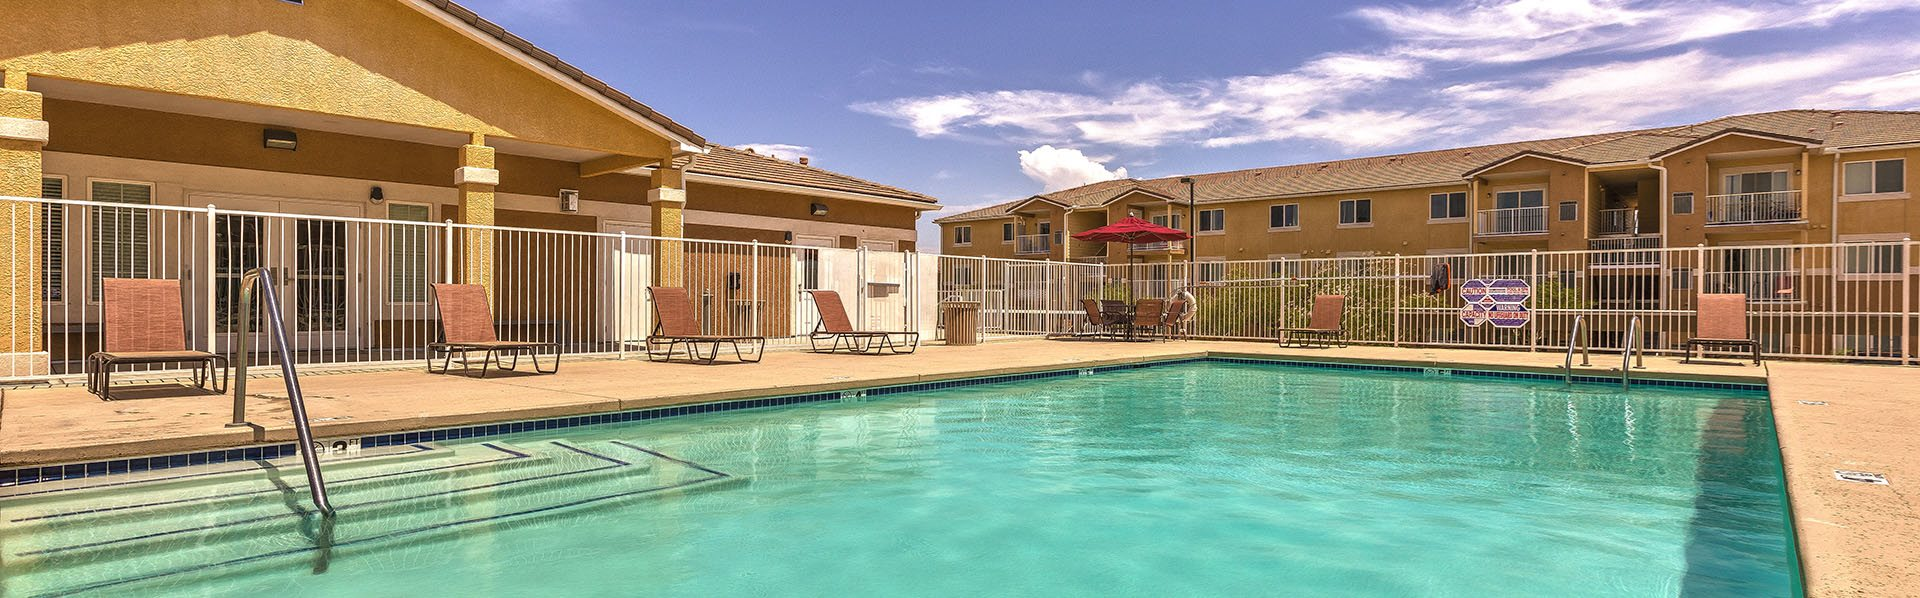 Pool with Lounge Chairs l Laughlin, NV 89029 l Vista Creek Apts for rent